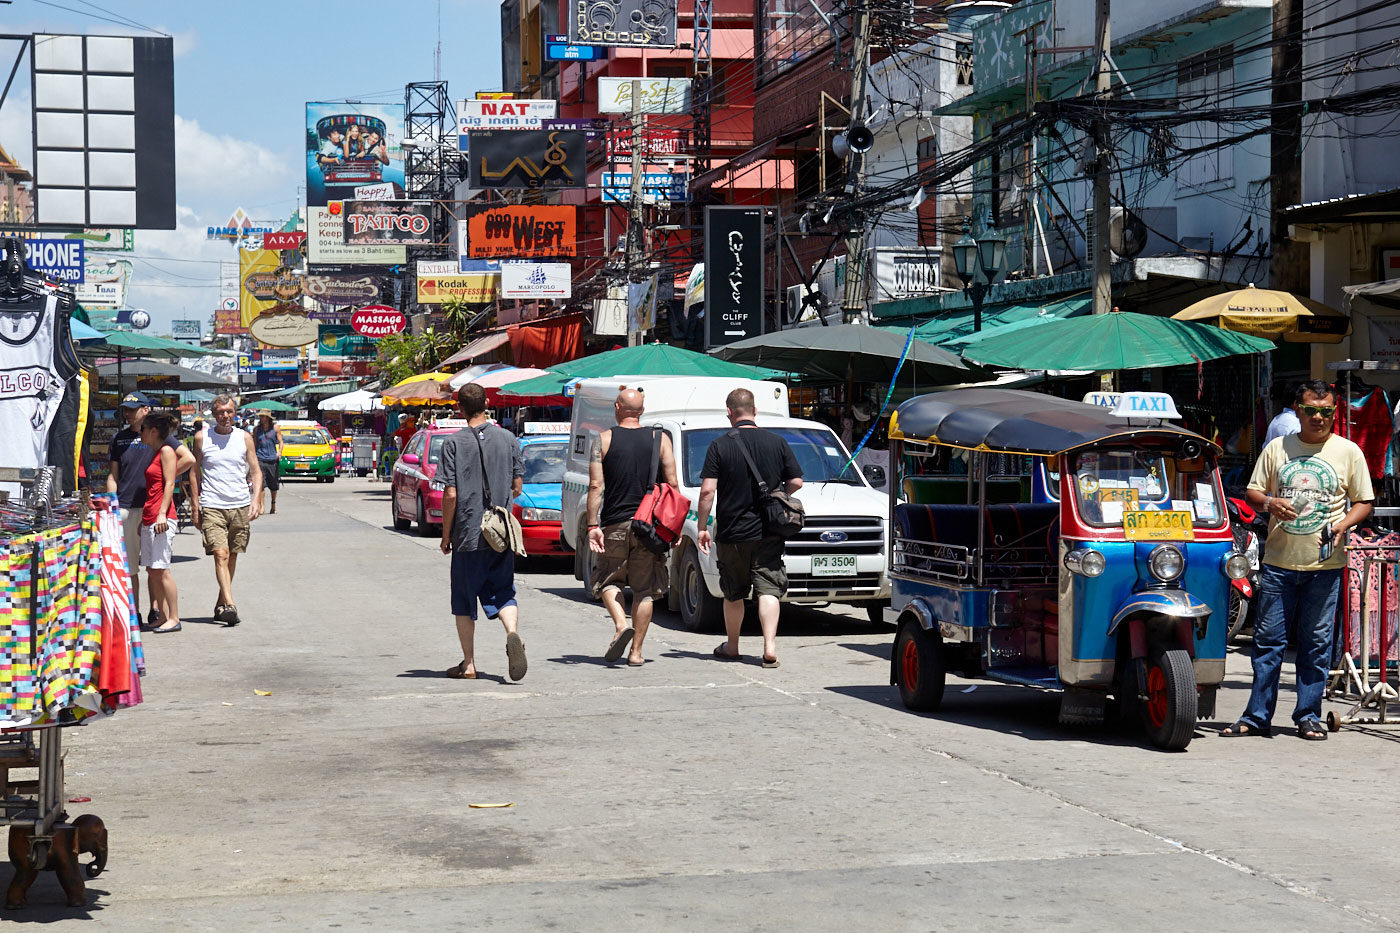 Backpacker ghetto Khao San Road to be spruced up